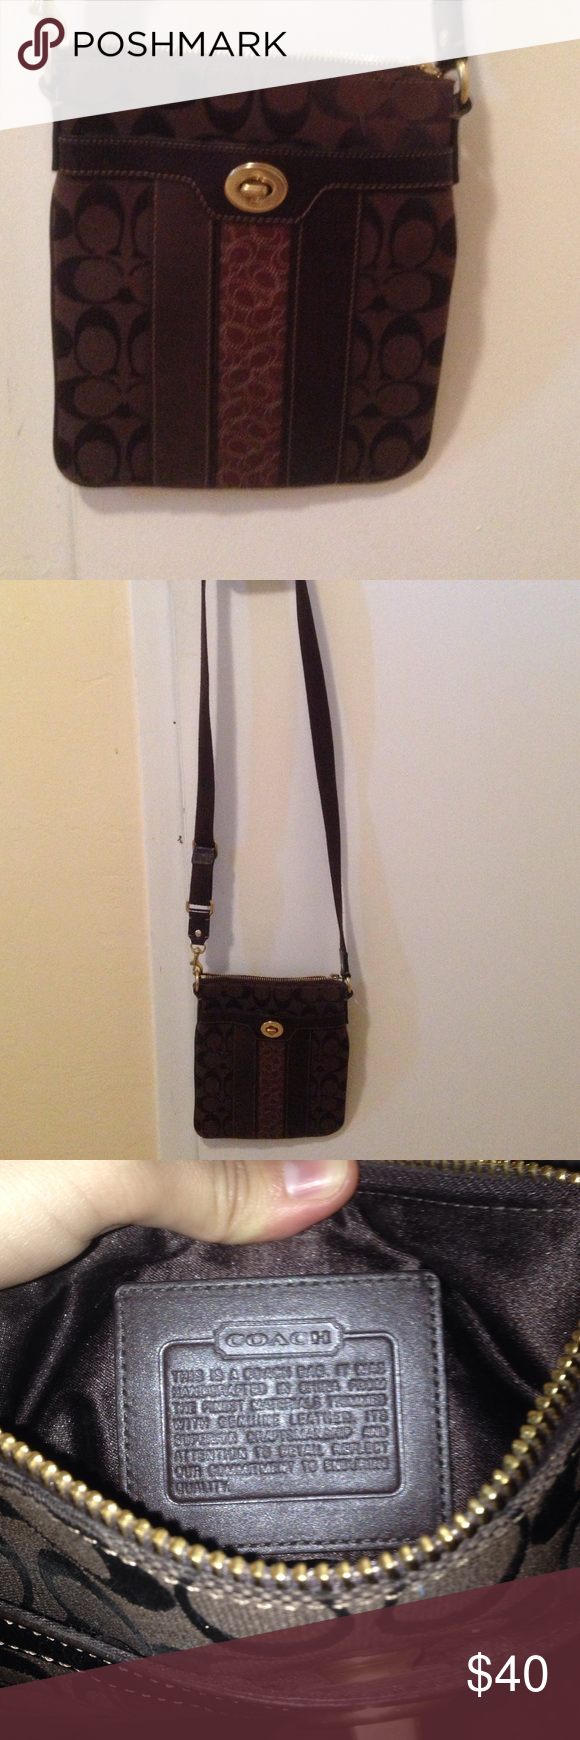 Coach brown cross body purse Used a few times, excellent condition Coach Bags Crossbody Bags